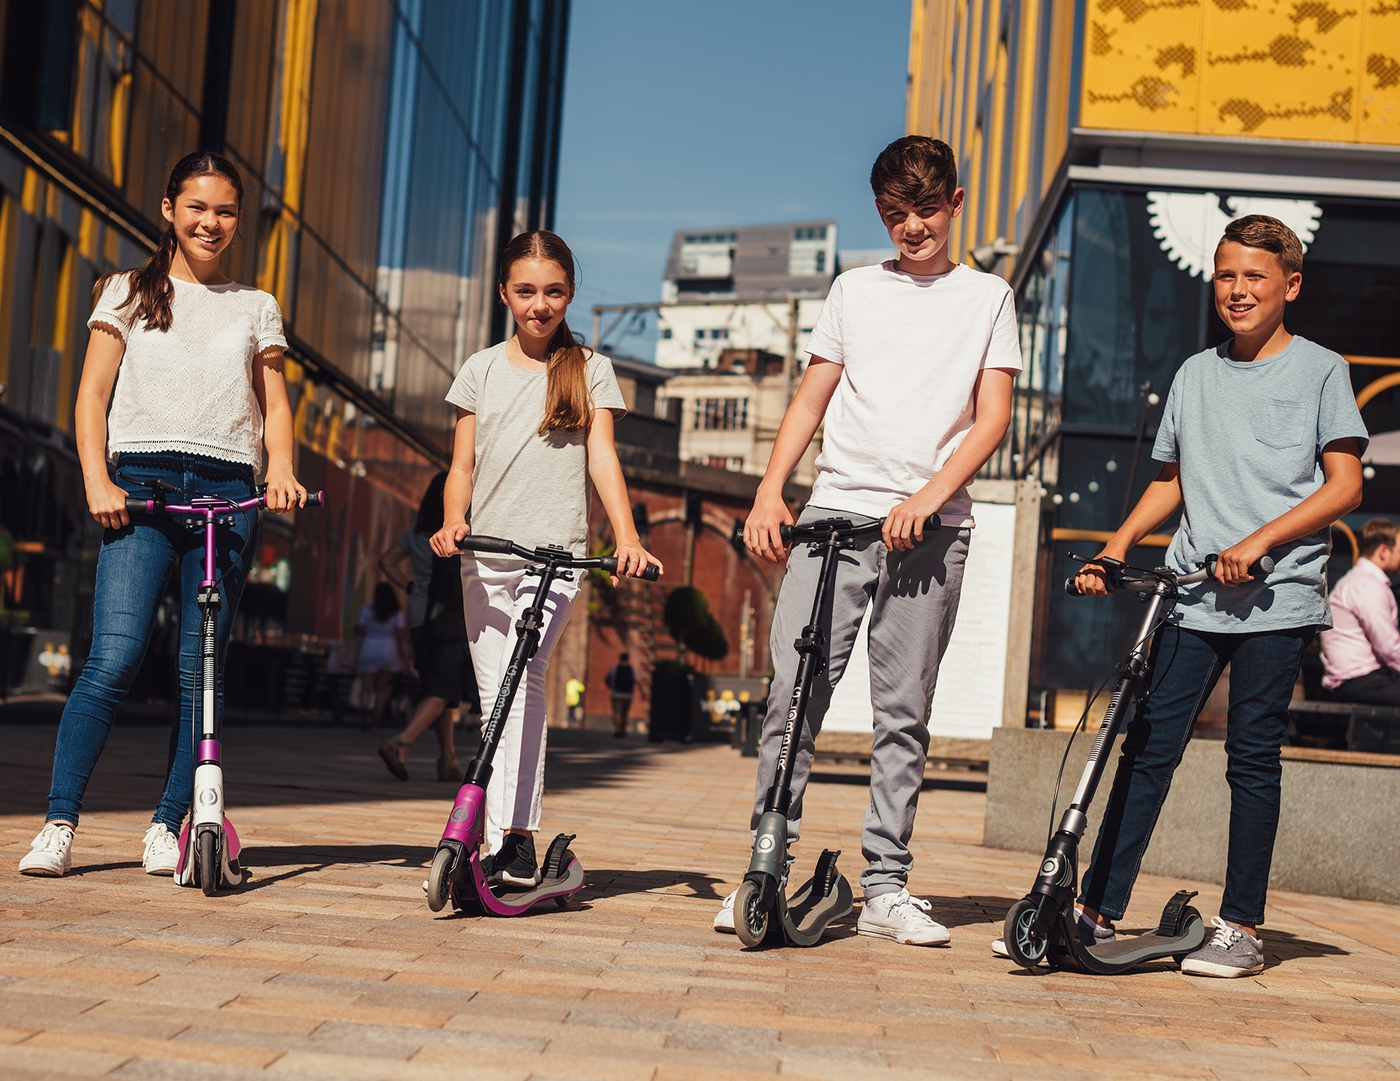 collapsible scooters for adults & teens